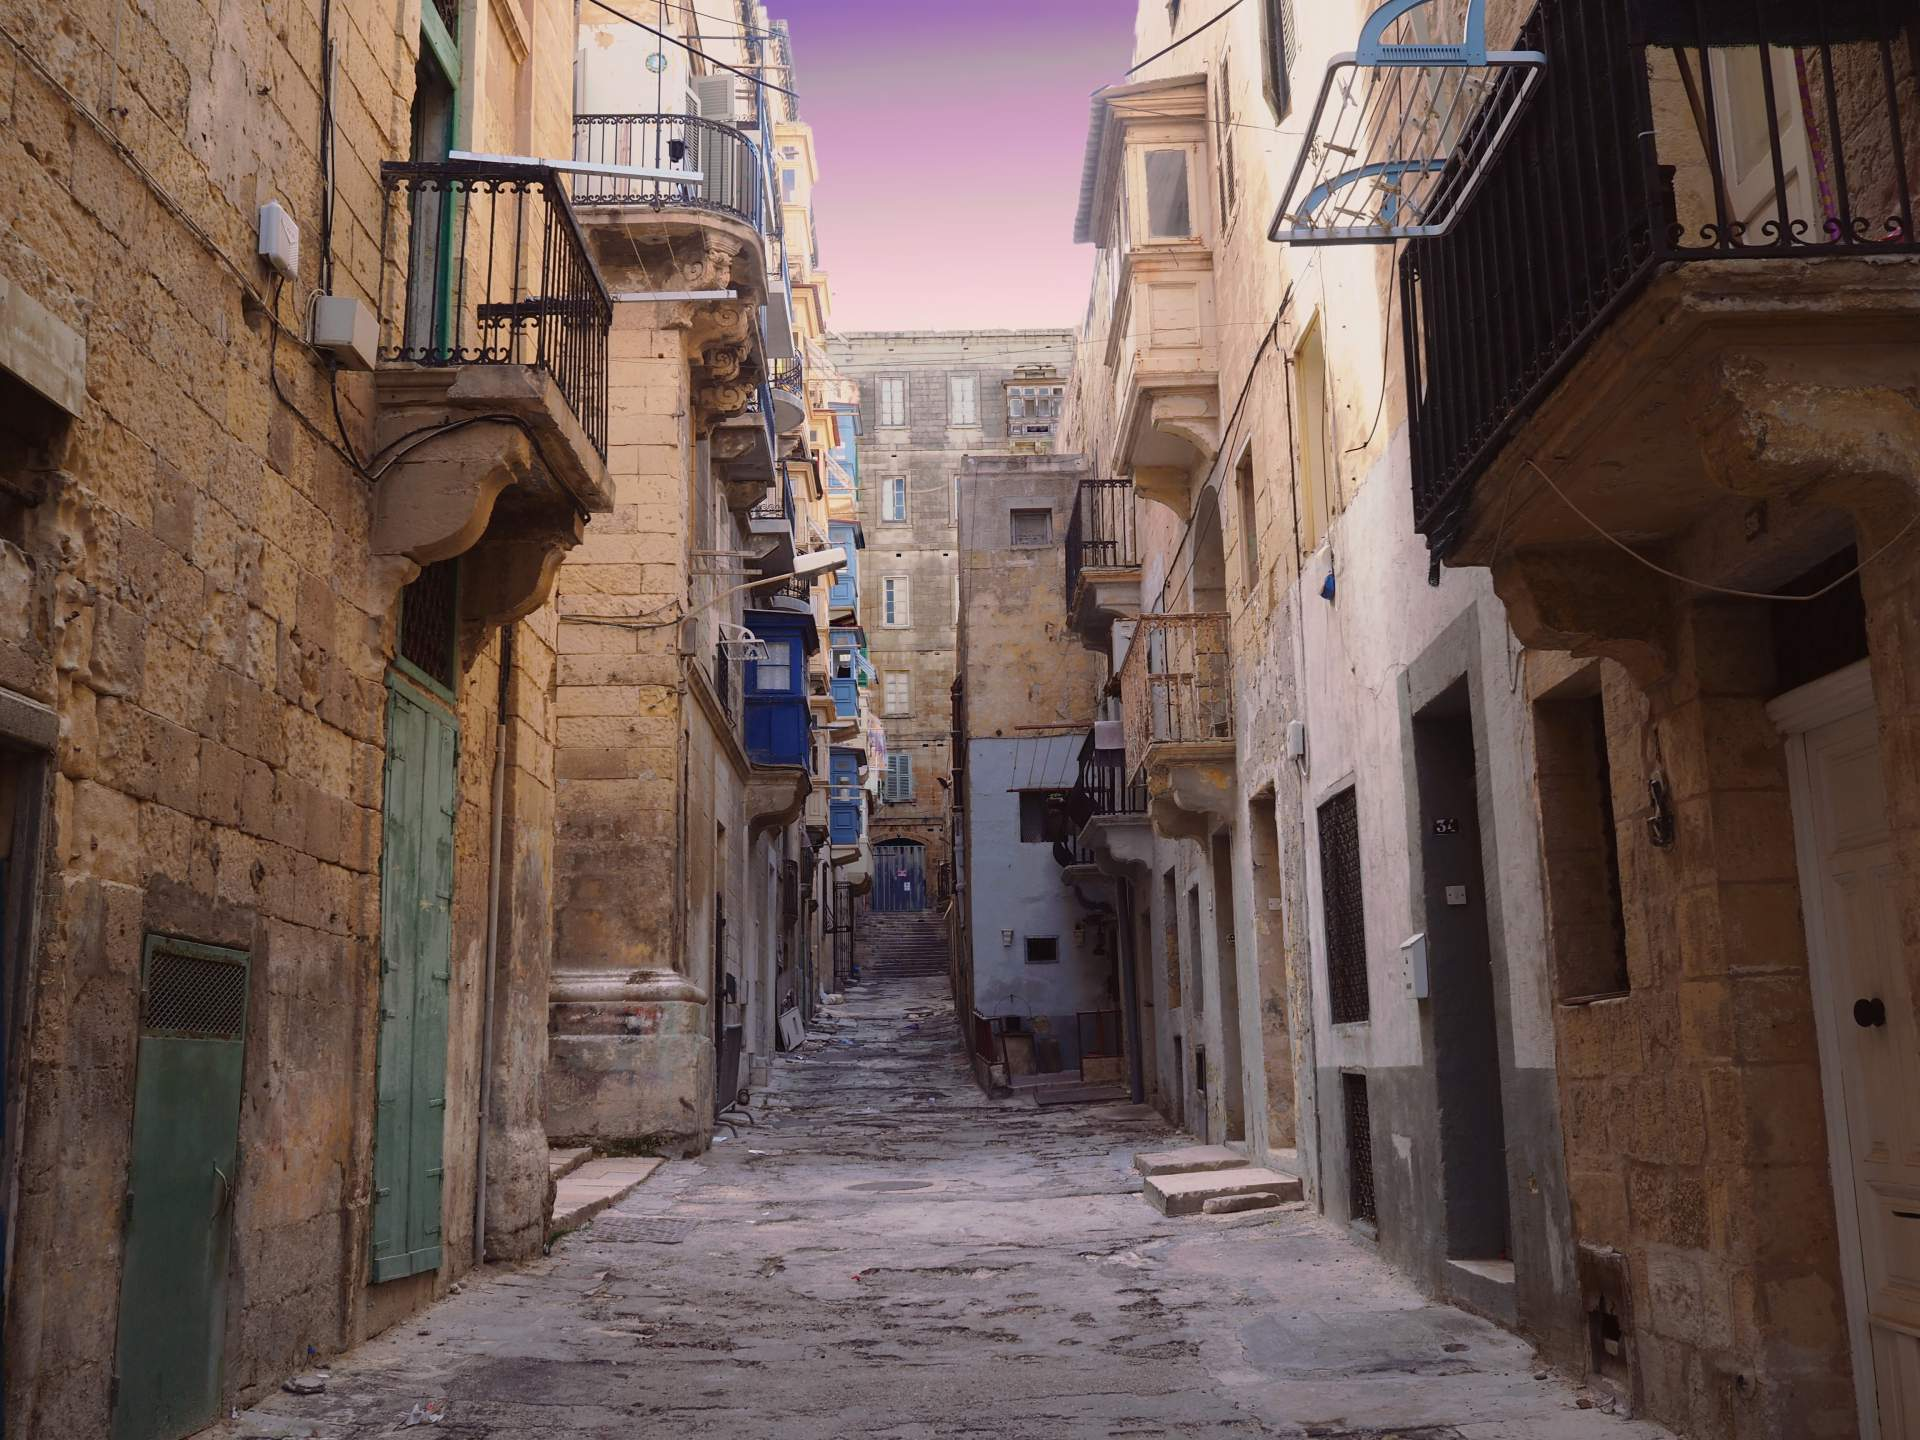 Valletta in Malta is the 2018 European Capital of Culture and one of the cultural tourism destinations for 2018